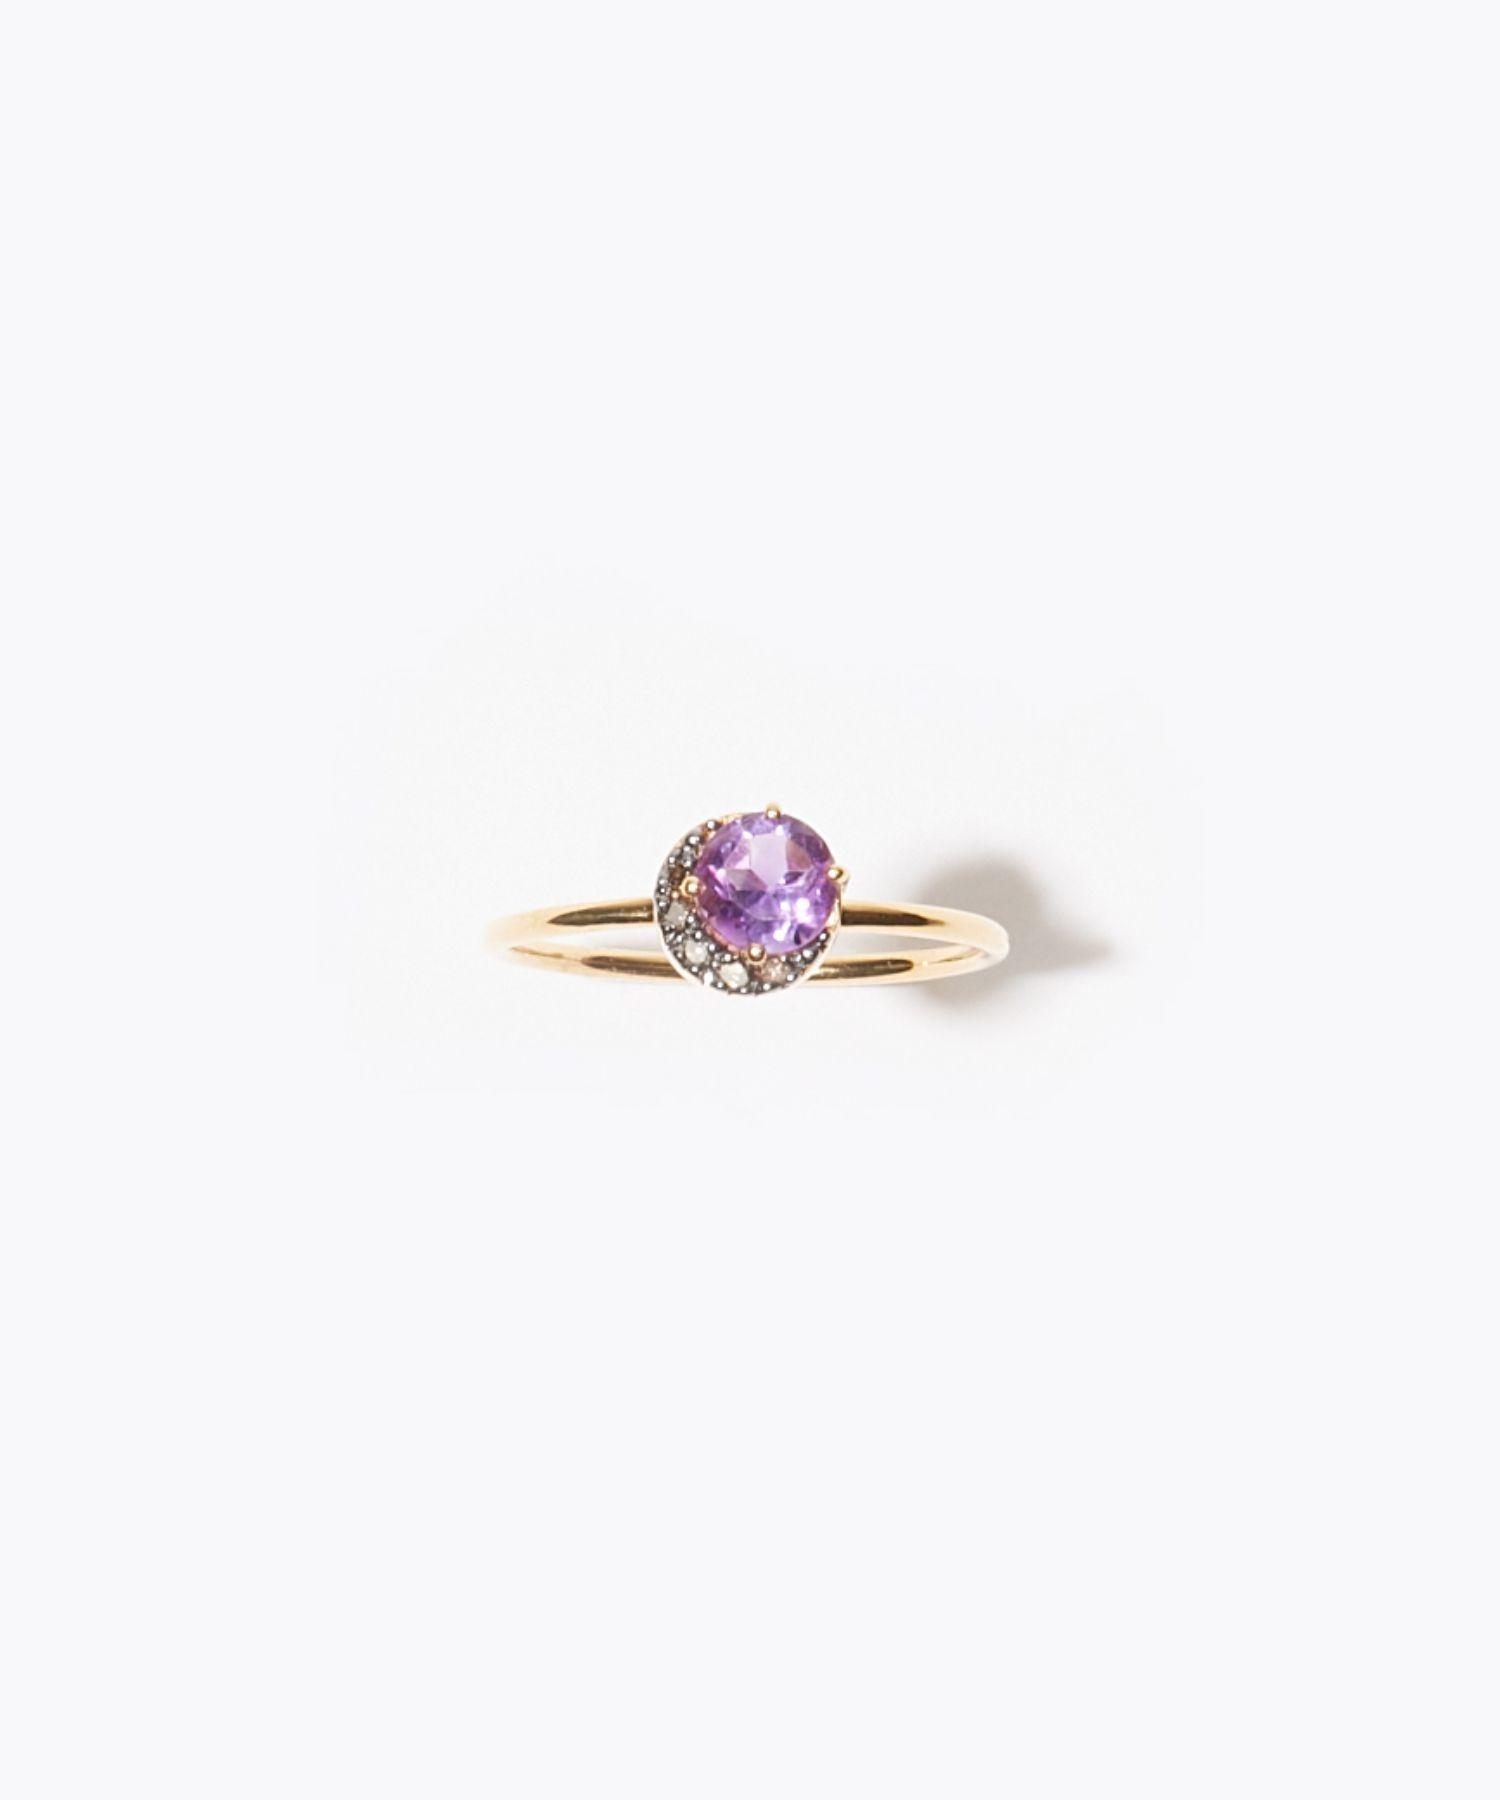 [elafonisi] dark amethyst new moon pave diamonds ring